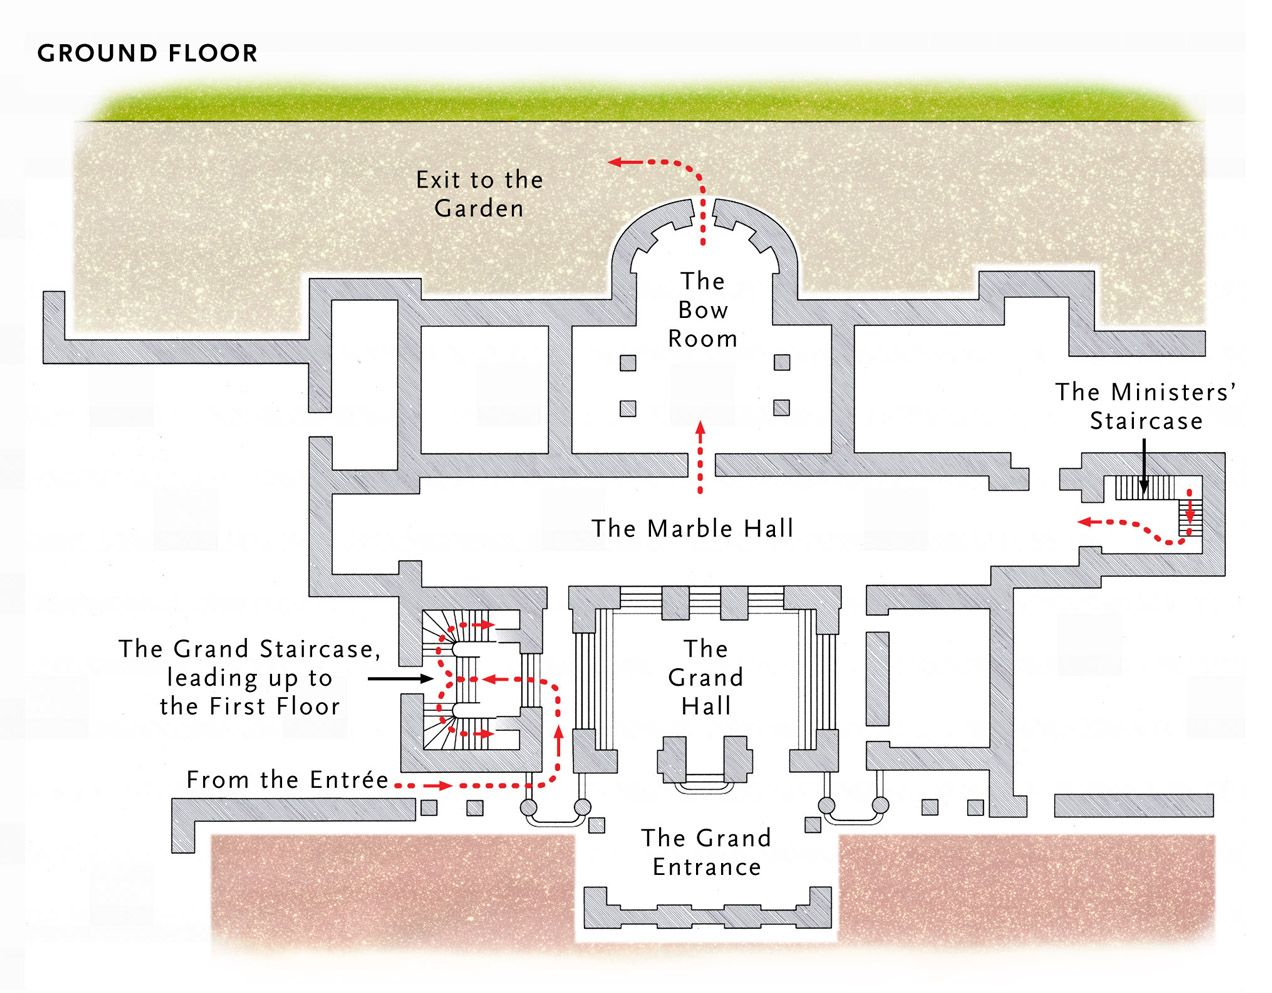 Plan buckingham palace ground floor scala publishing for Palace plan